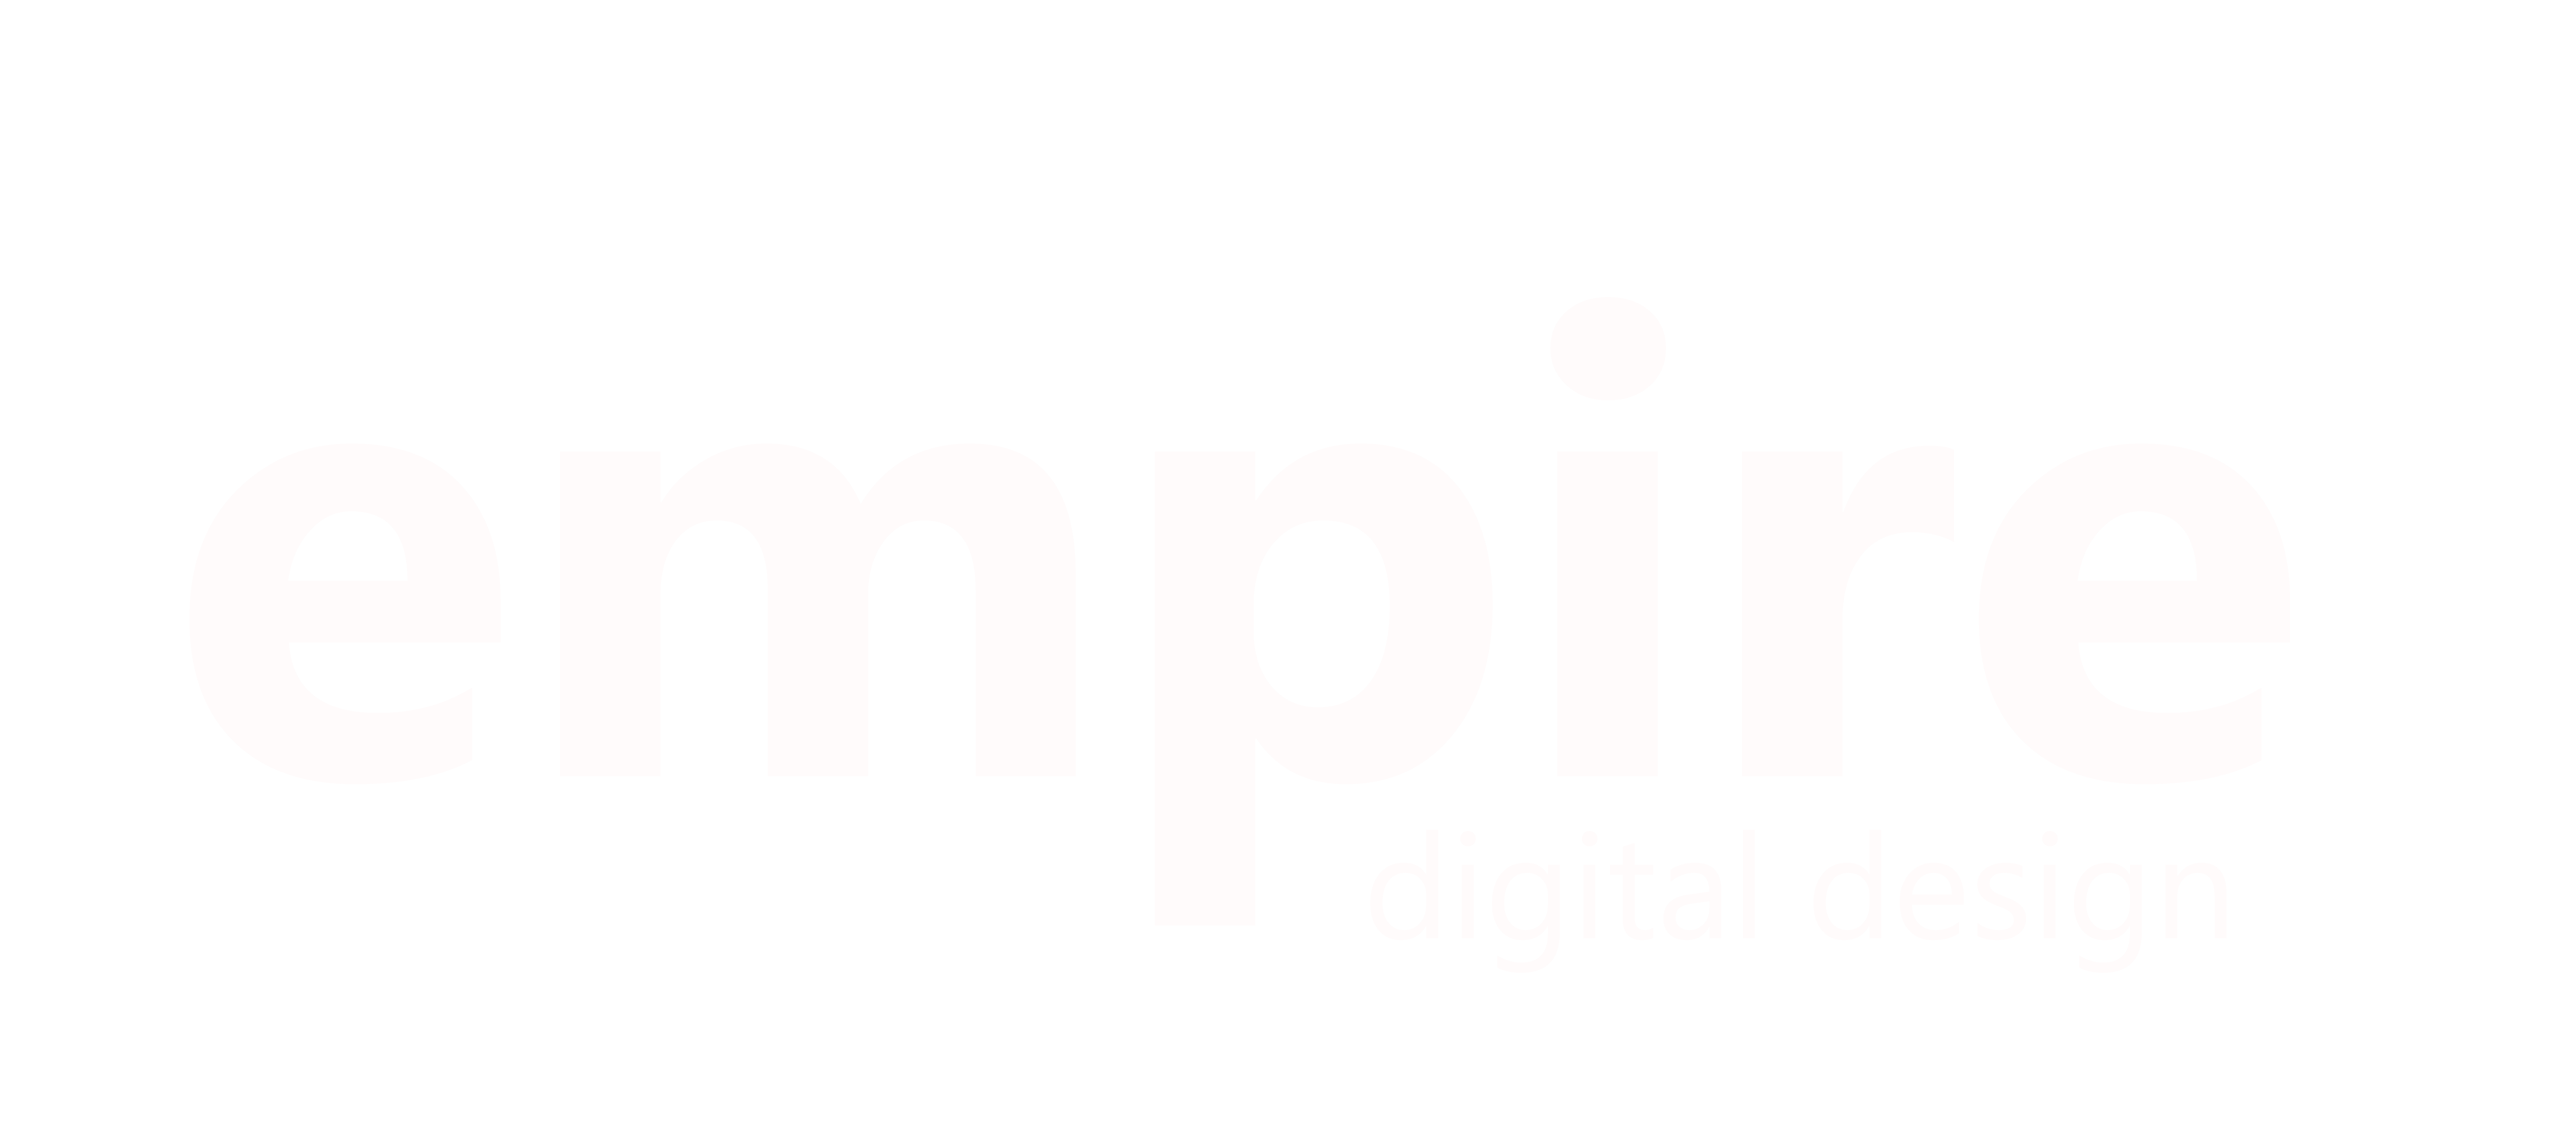 Empire Digital Design